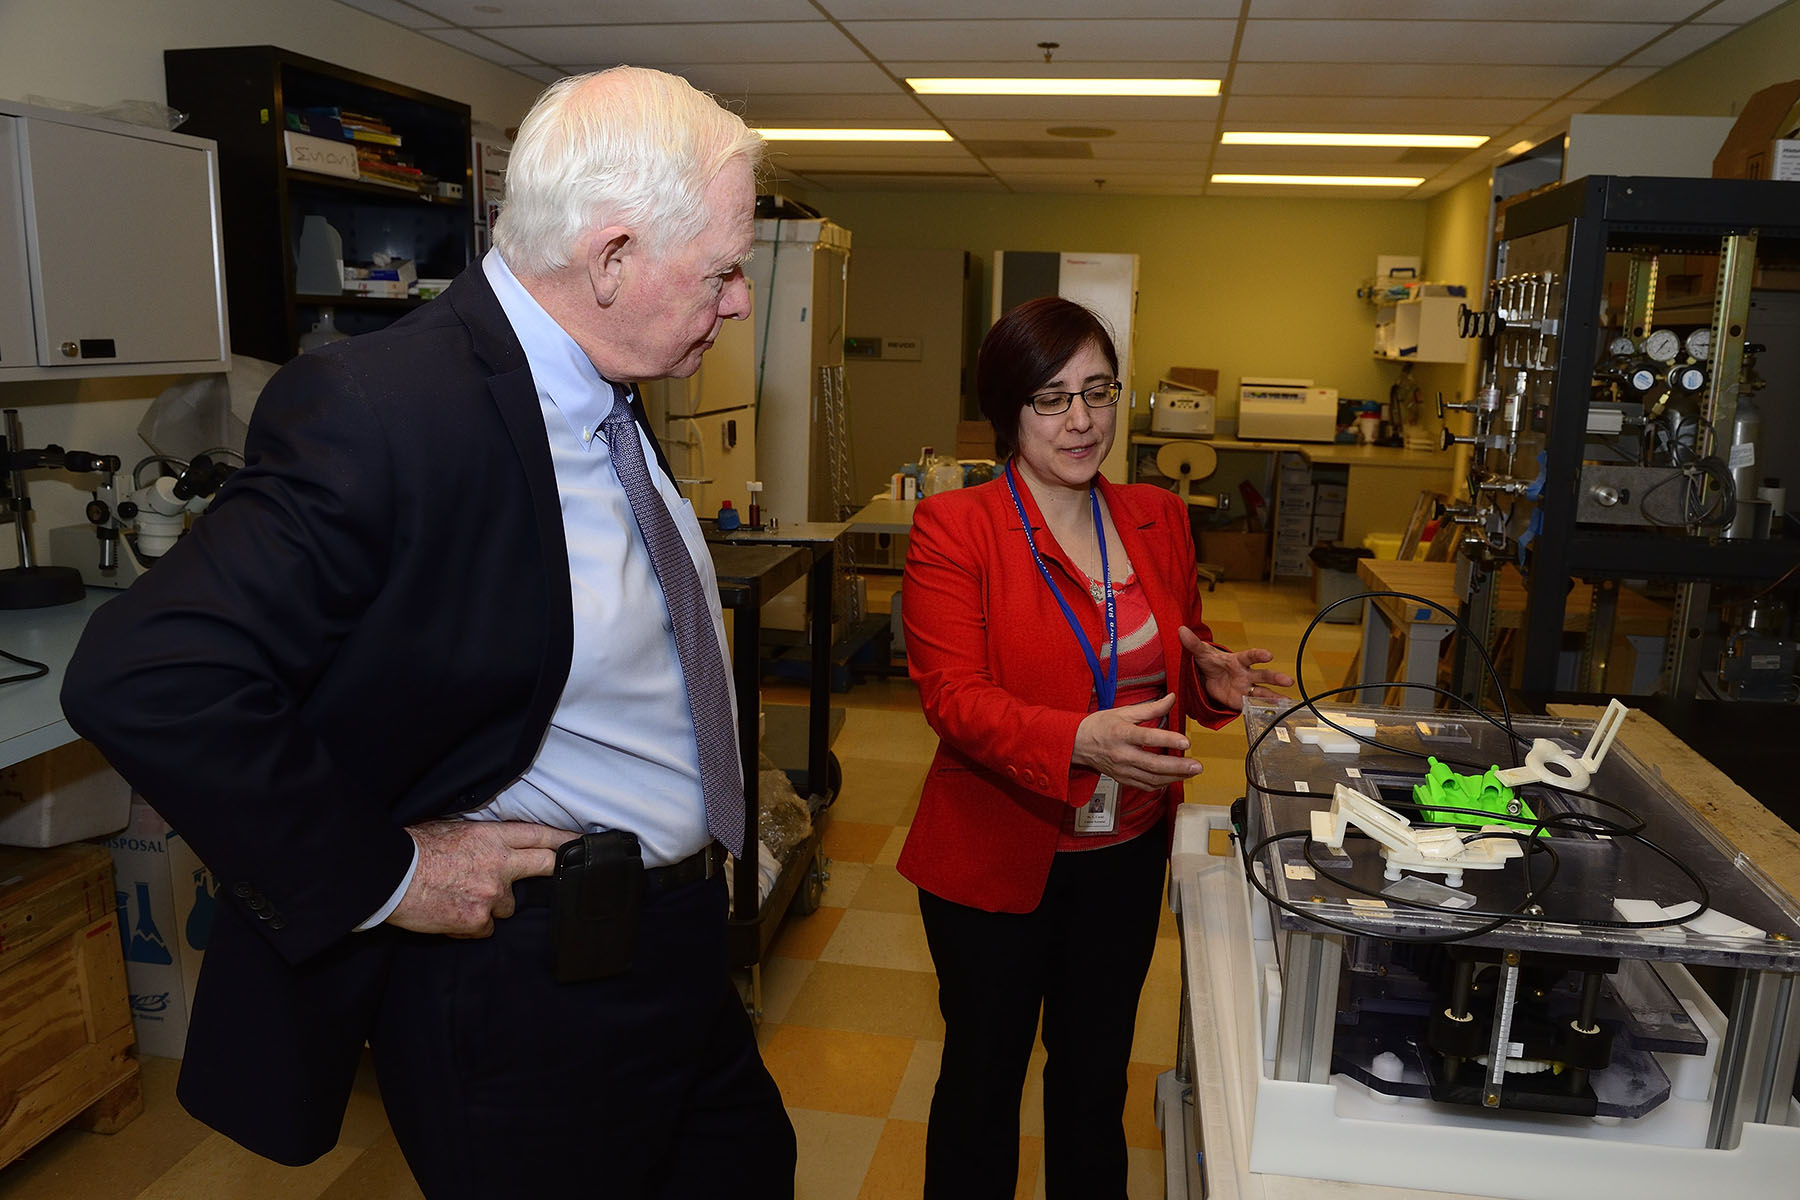 In the afternoon, the Governor General visited the Thunder Bay Regional Research Institute to learn about the facility's innovative practices.